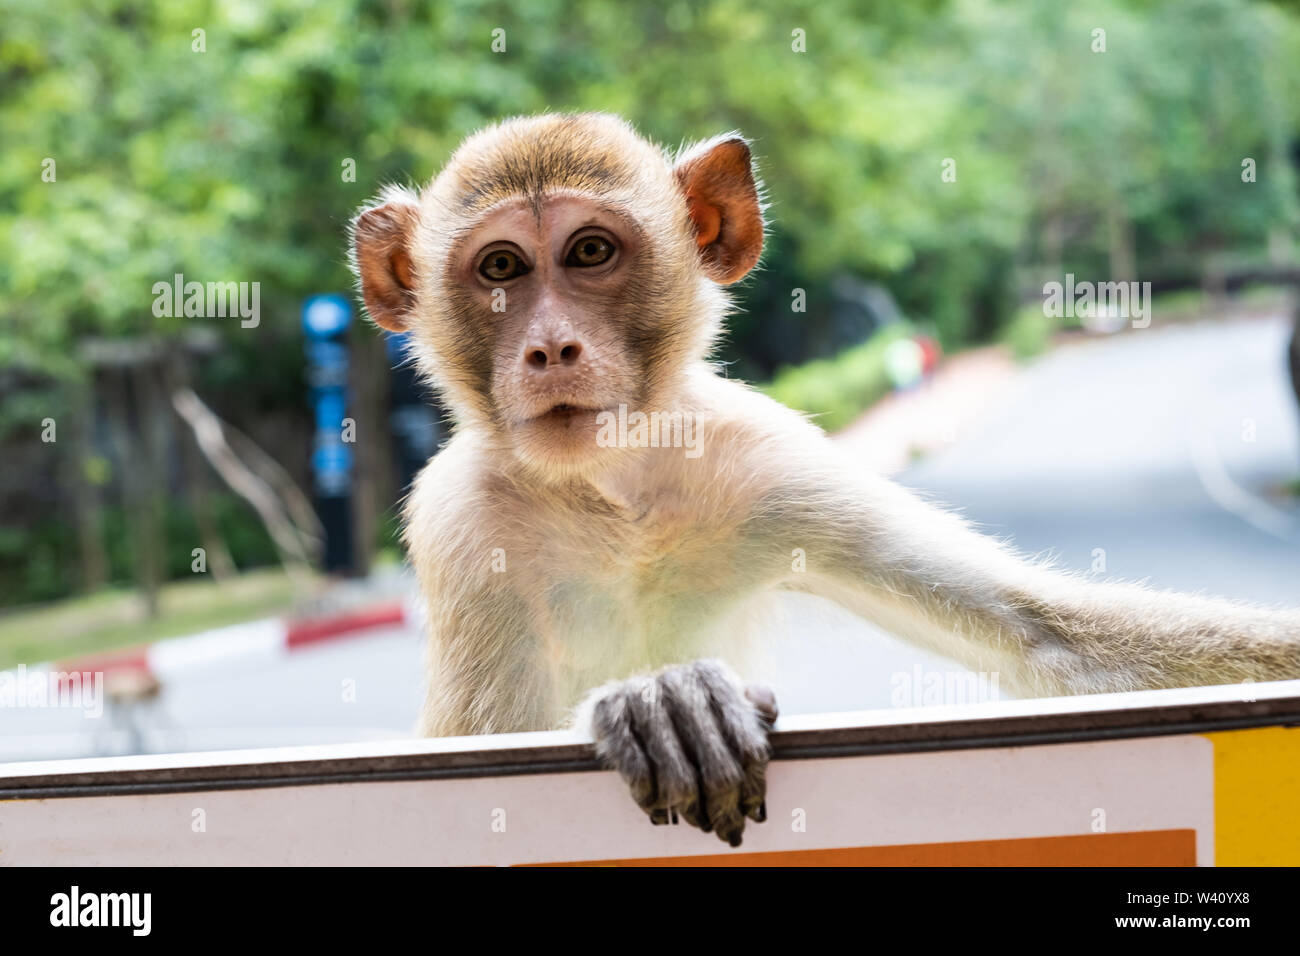 monkey. The concept of animals in the zoo. Pattaya Zoo, Thailand - Stock Image